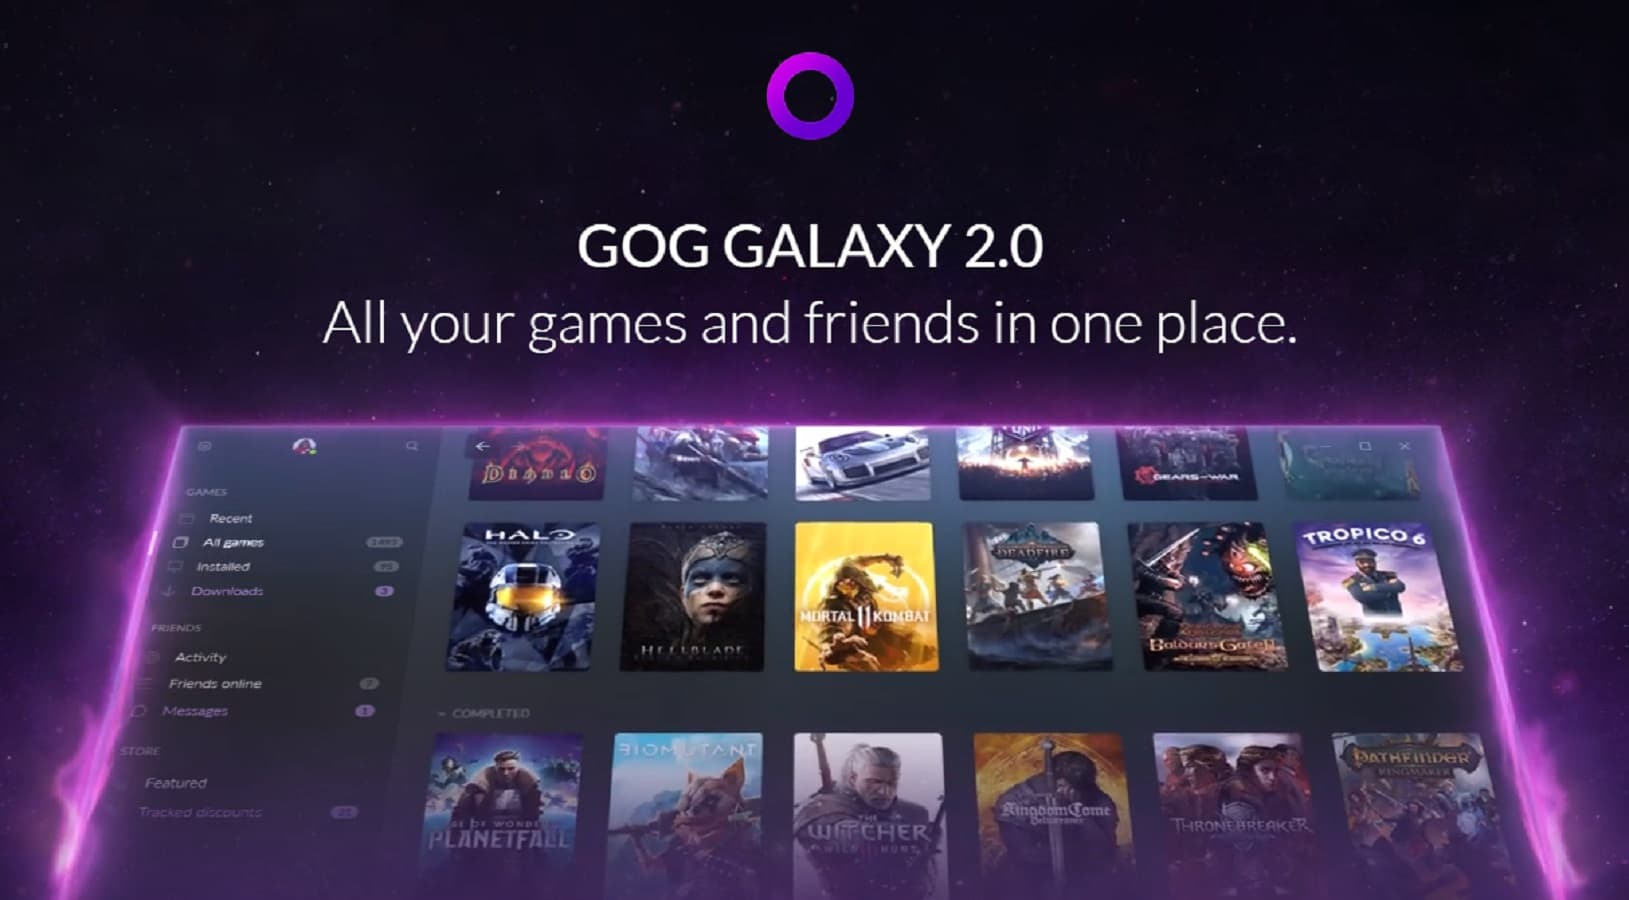 GOG Galaxy 2 0 helps bring almost all of your games under one roof